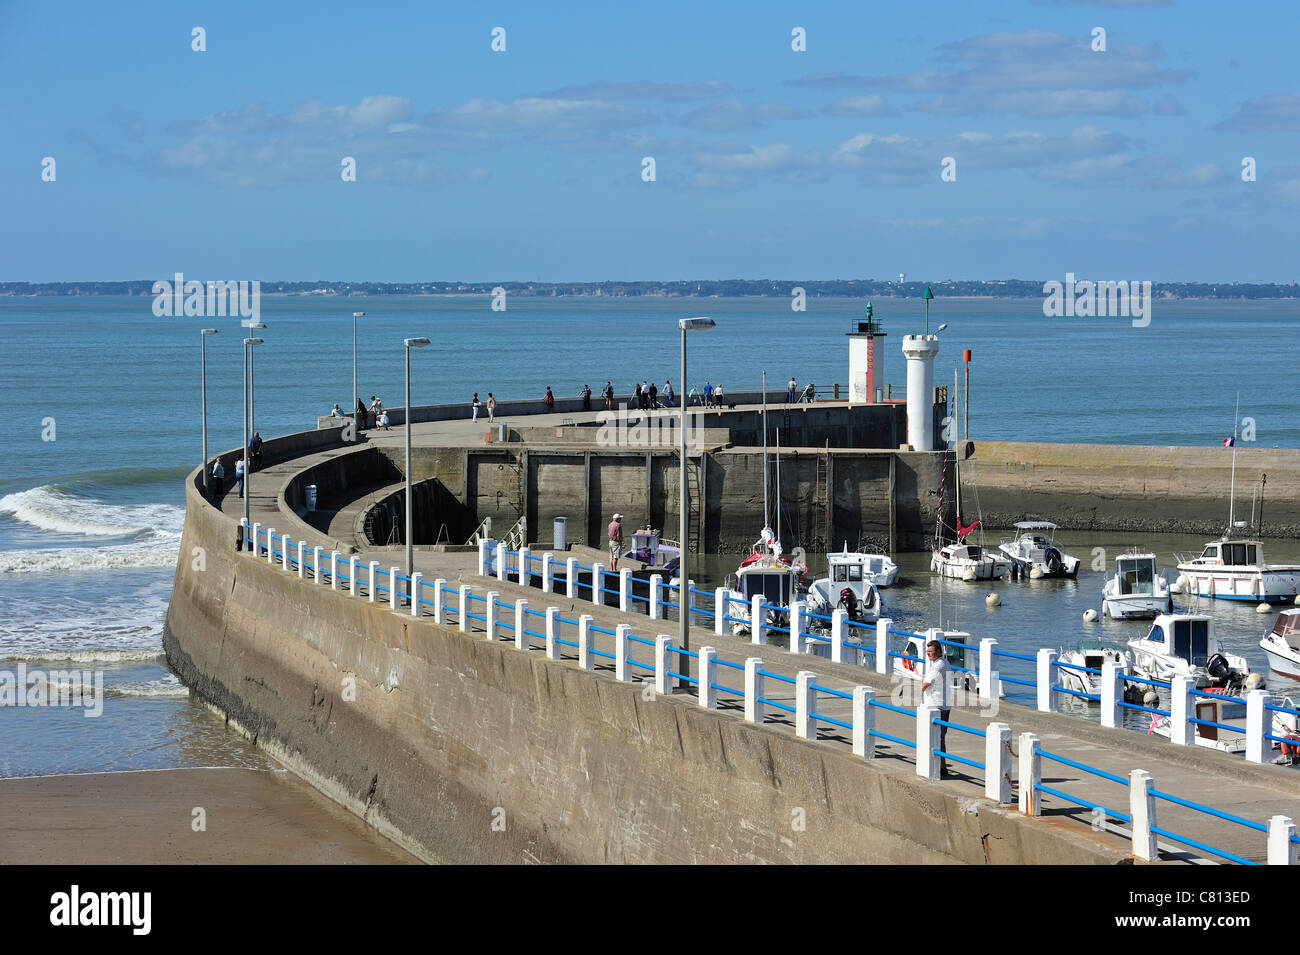 Harbour with anglers fishing from seawall at Saint-Michel-Chef-Chef, Loire-Atlantique, France Stock Photo